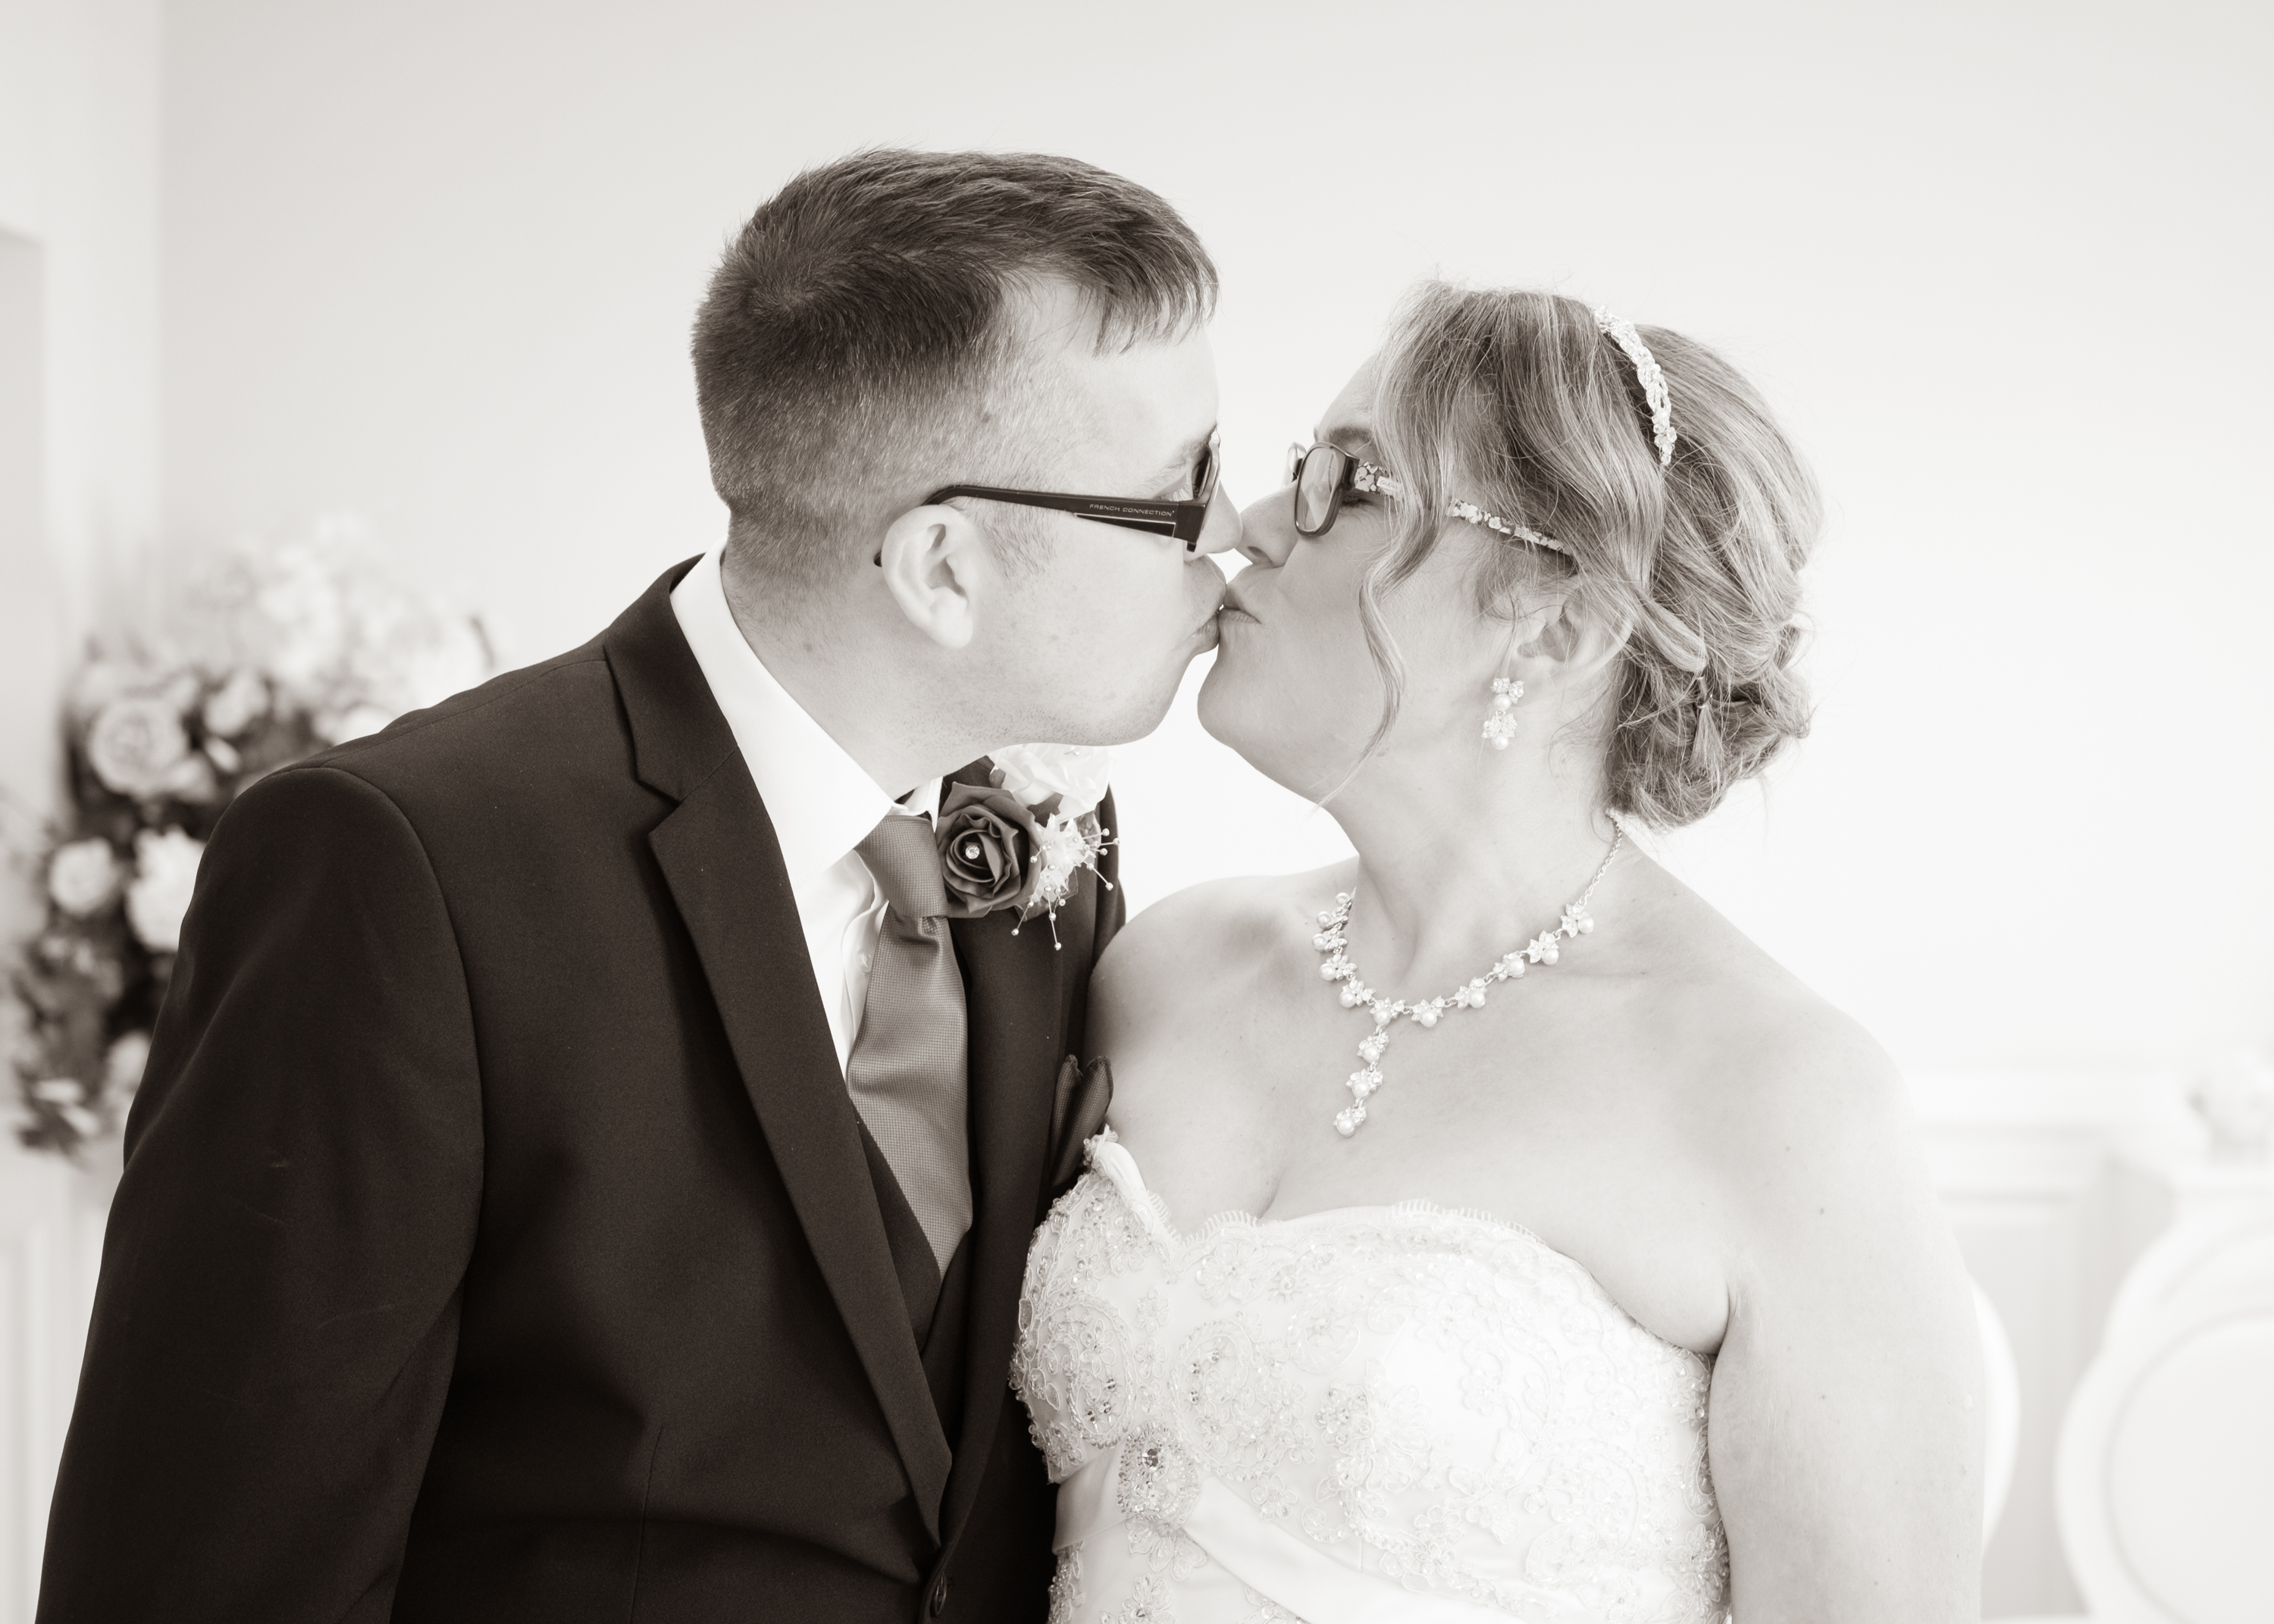 Bride & Groom kiss after their wedding ceremony at Stockton registry office